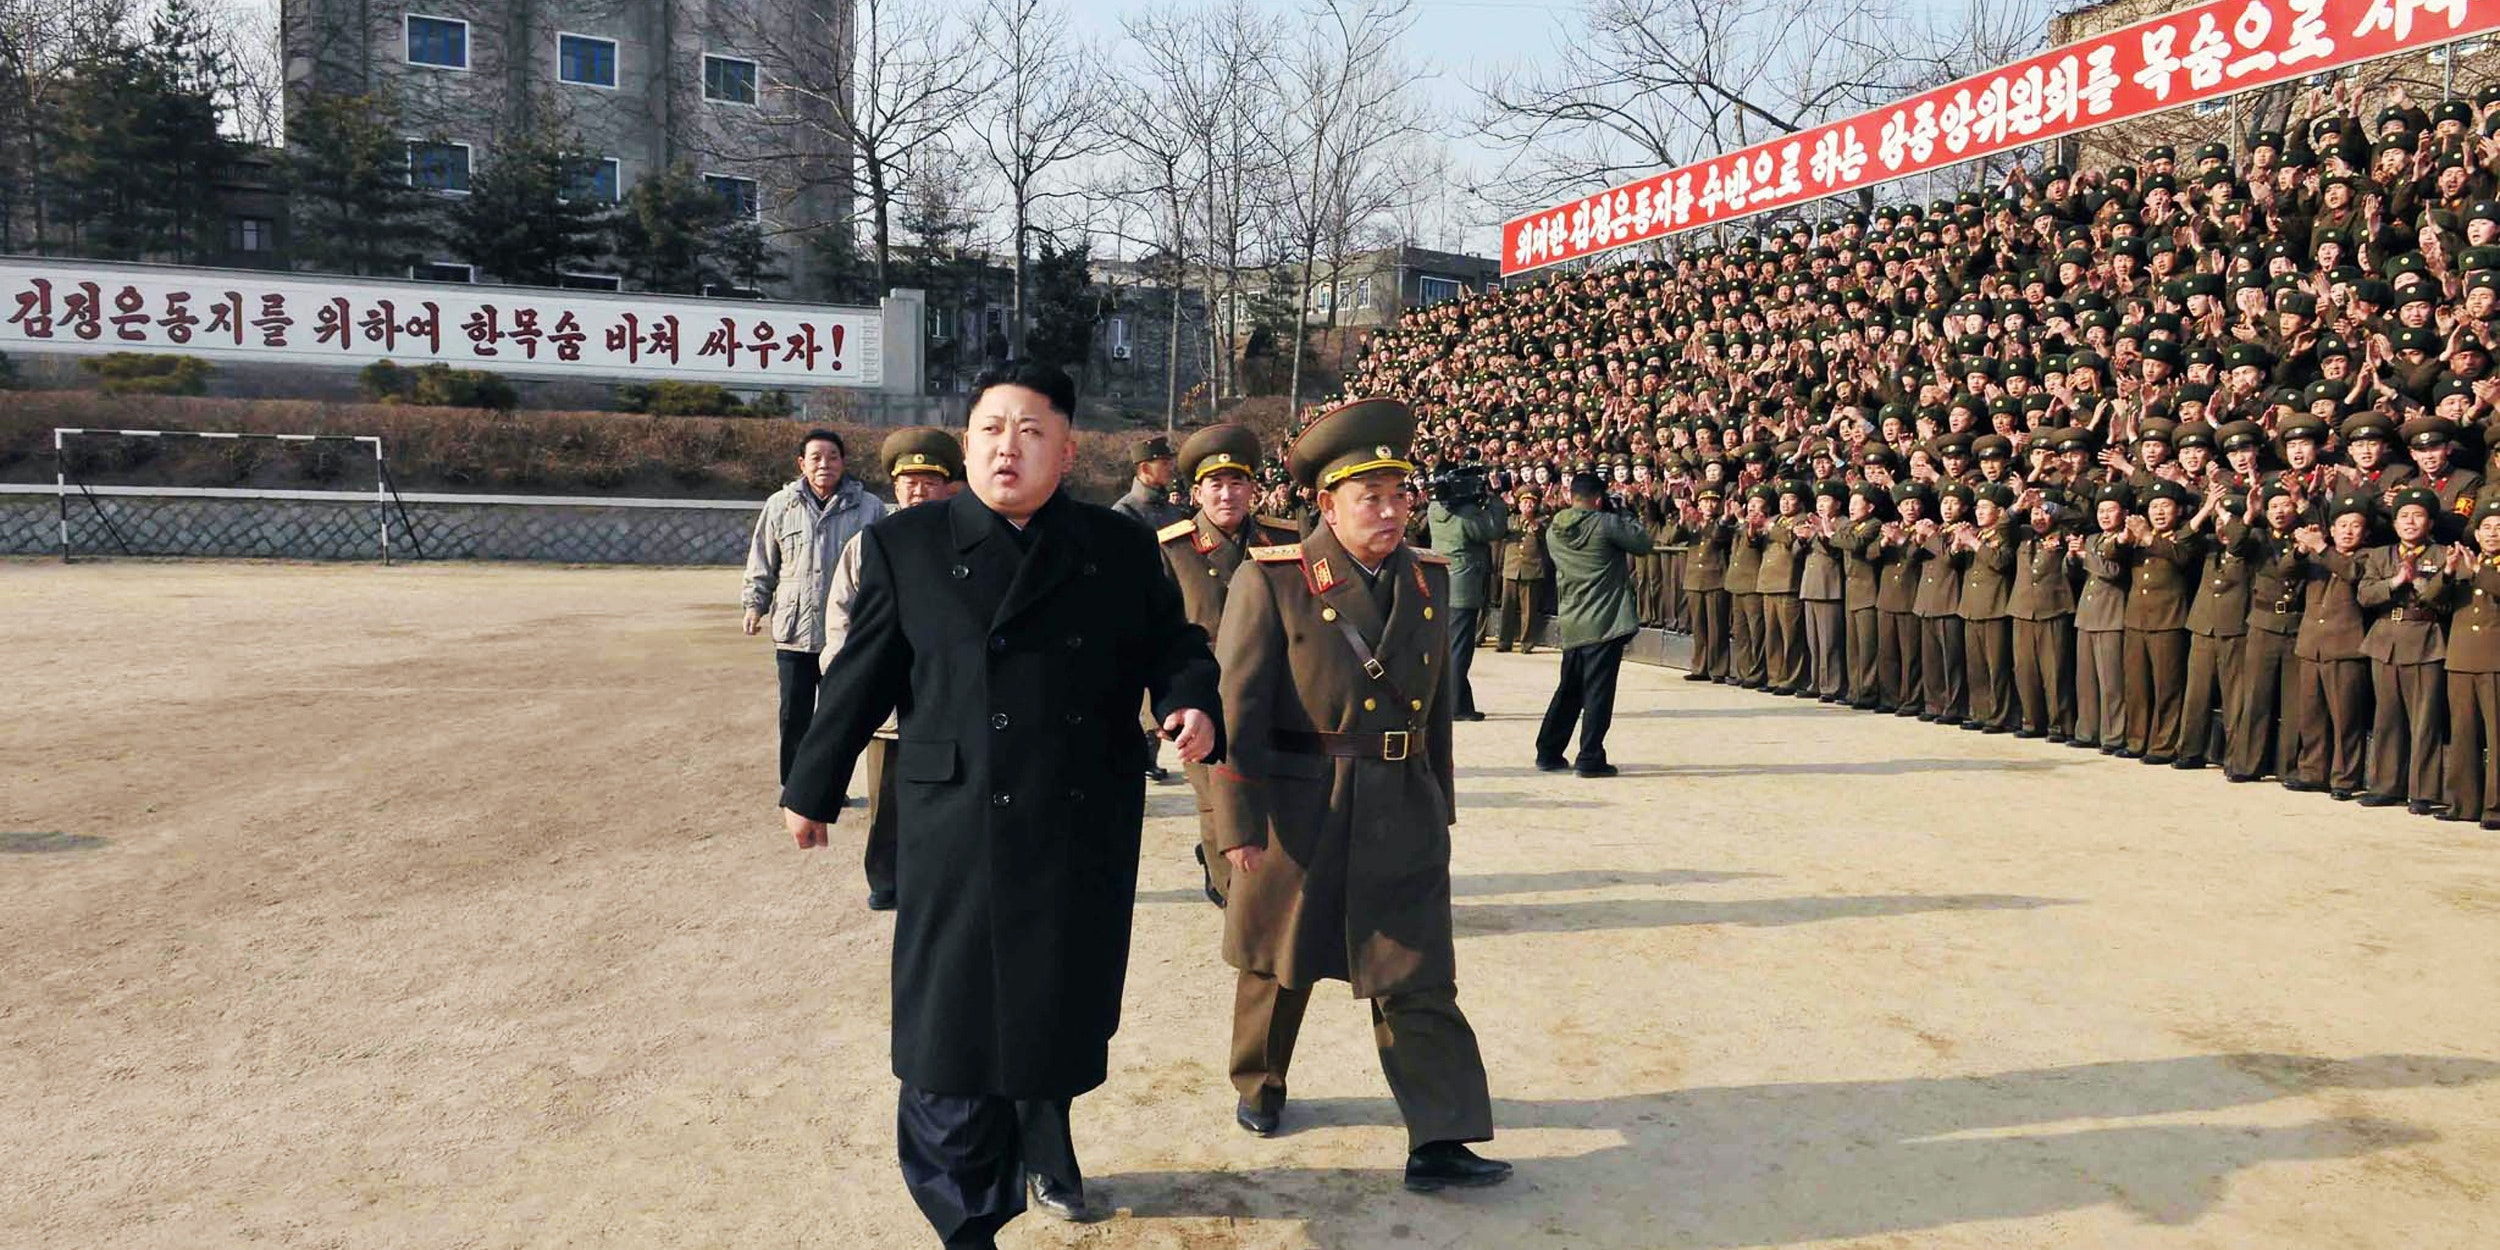 North Korea threatens to strike US with unknown weapons 08/16/2015 14